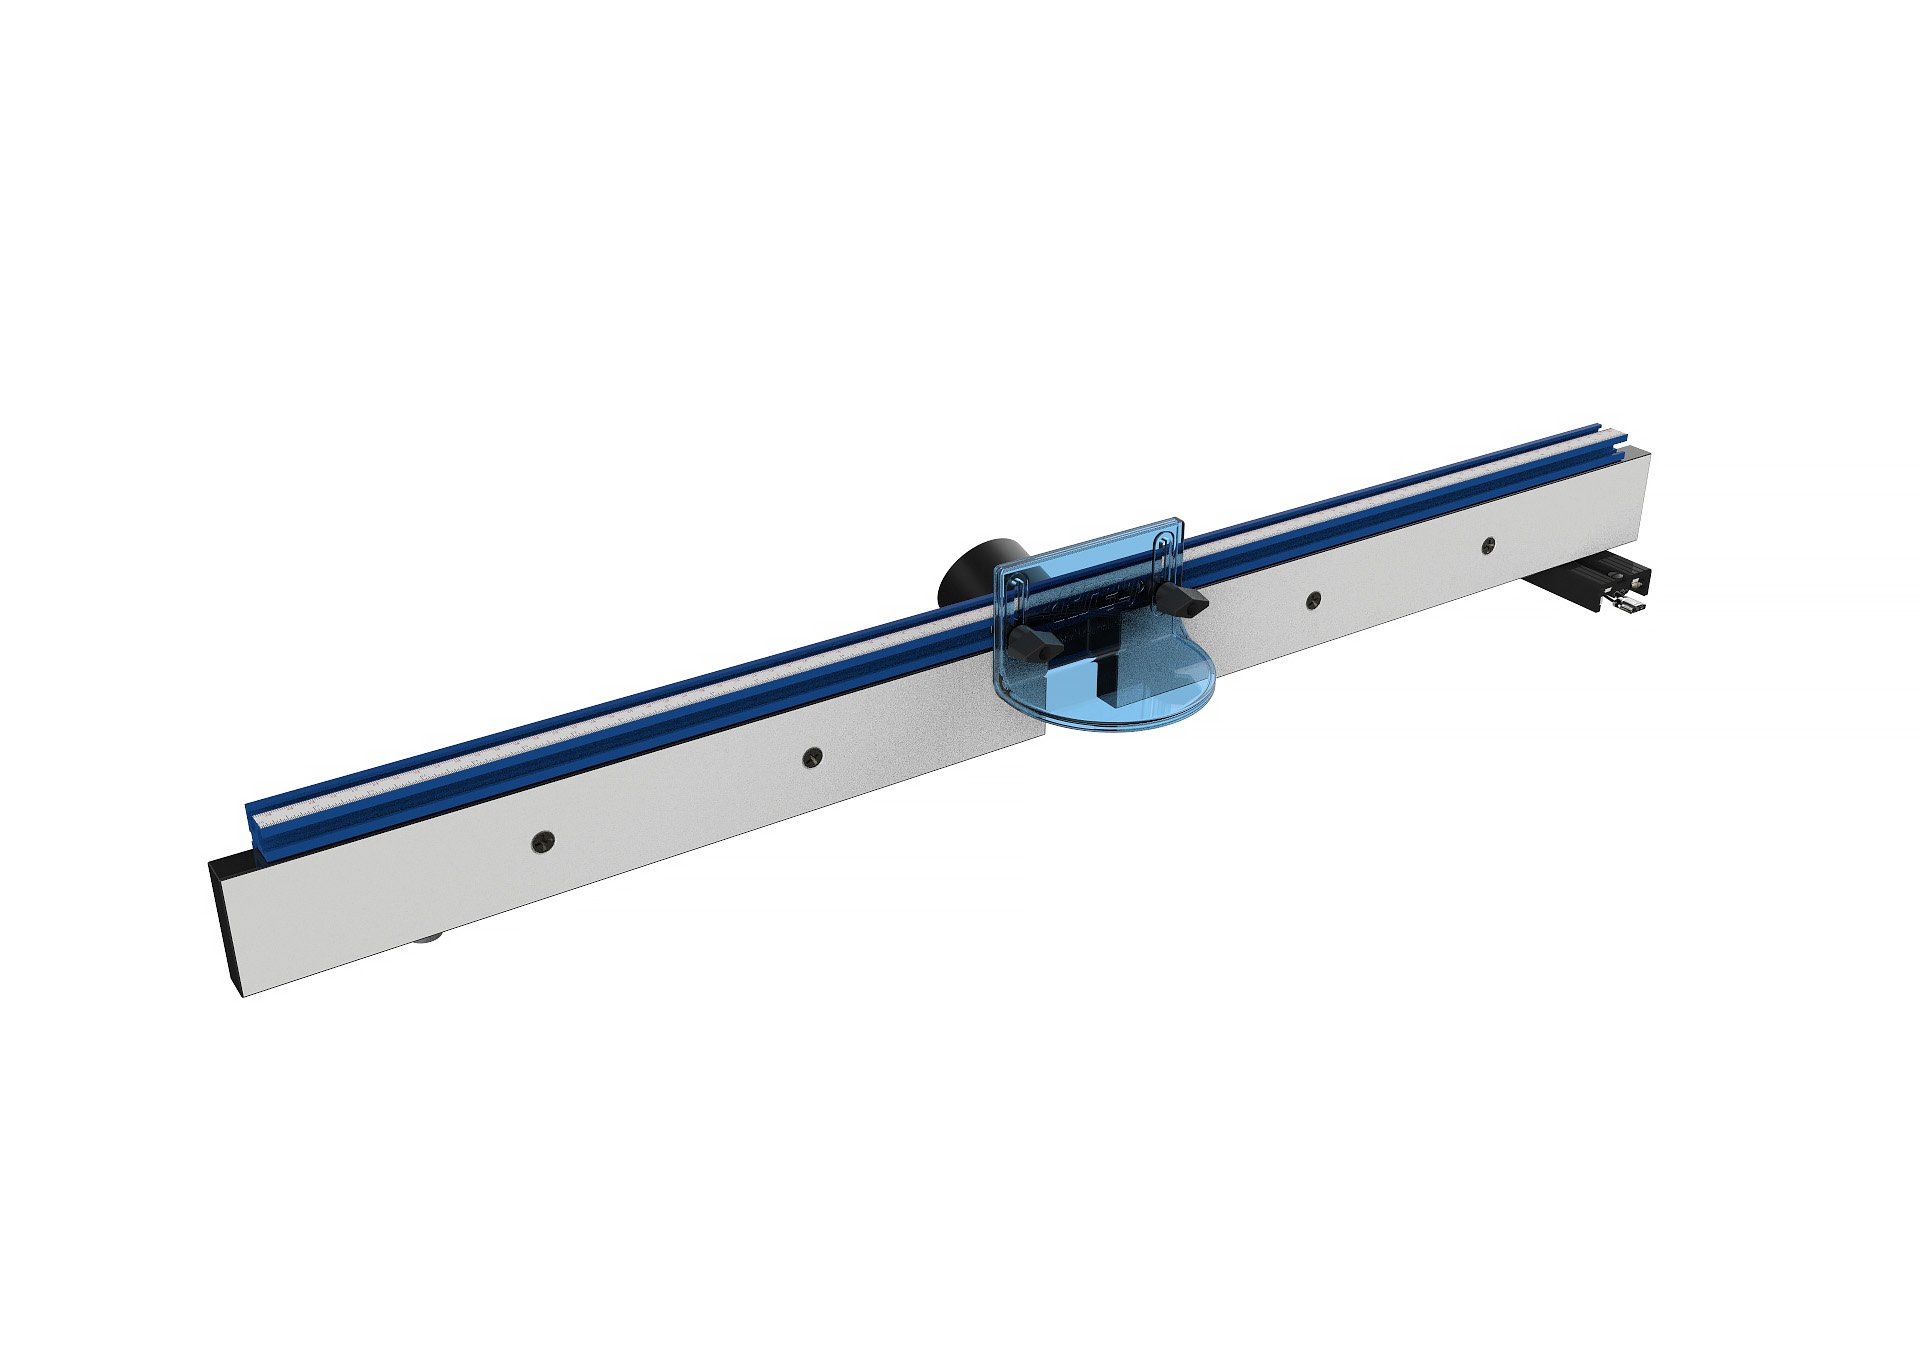 Kreg PRS1015 Router Table Fence by KREG